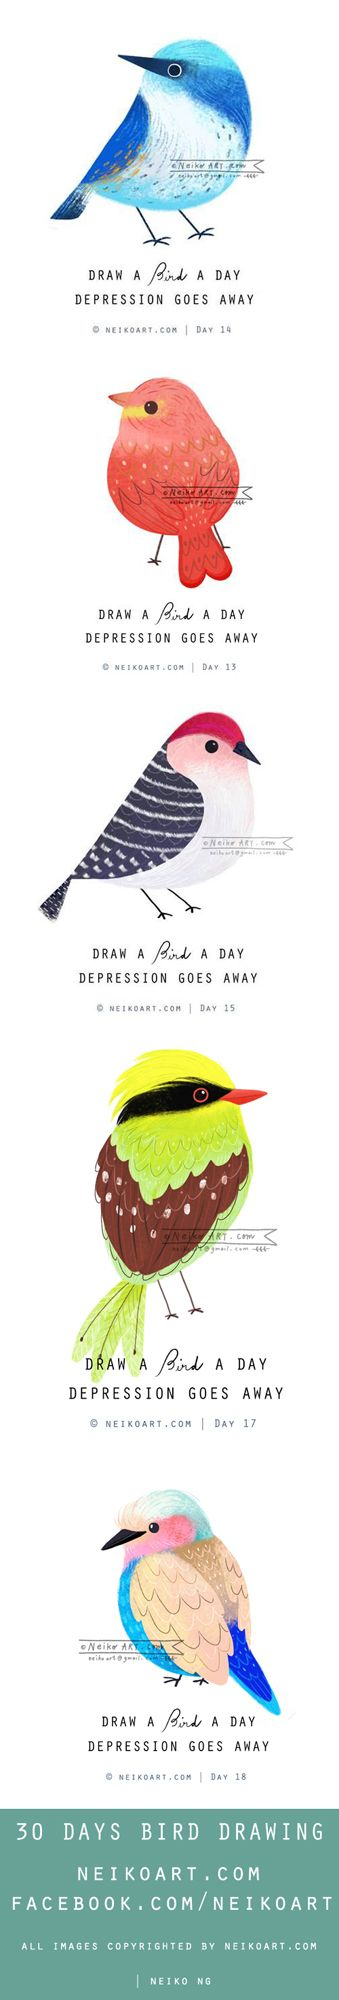 30 days bird drawing http://facebook.com/neikoart for all the birds